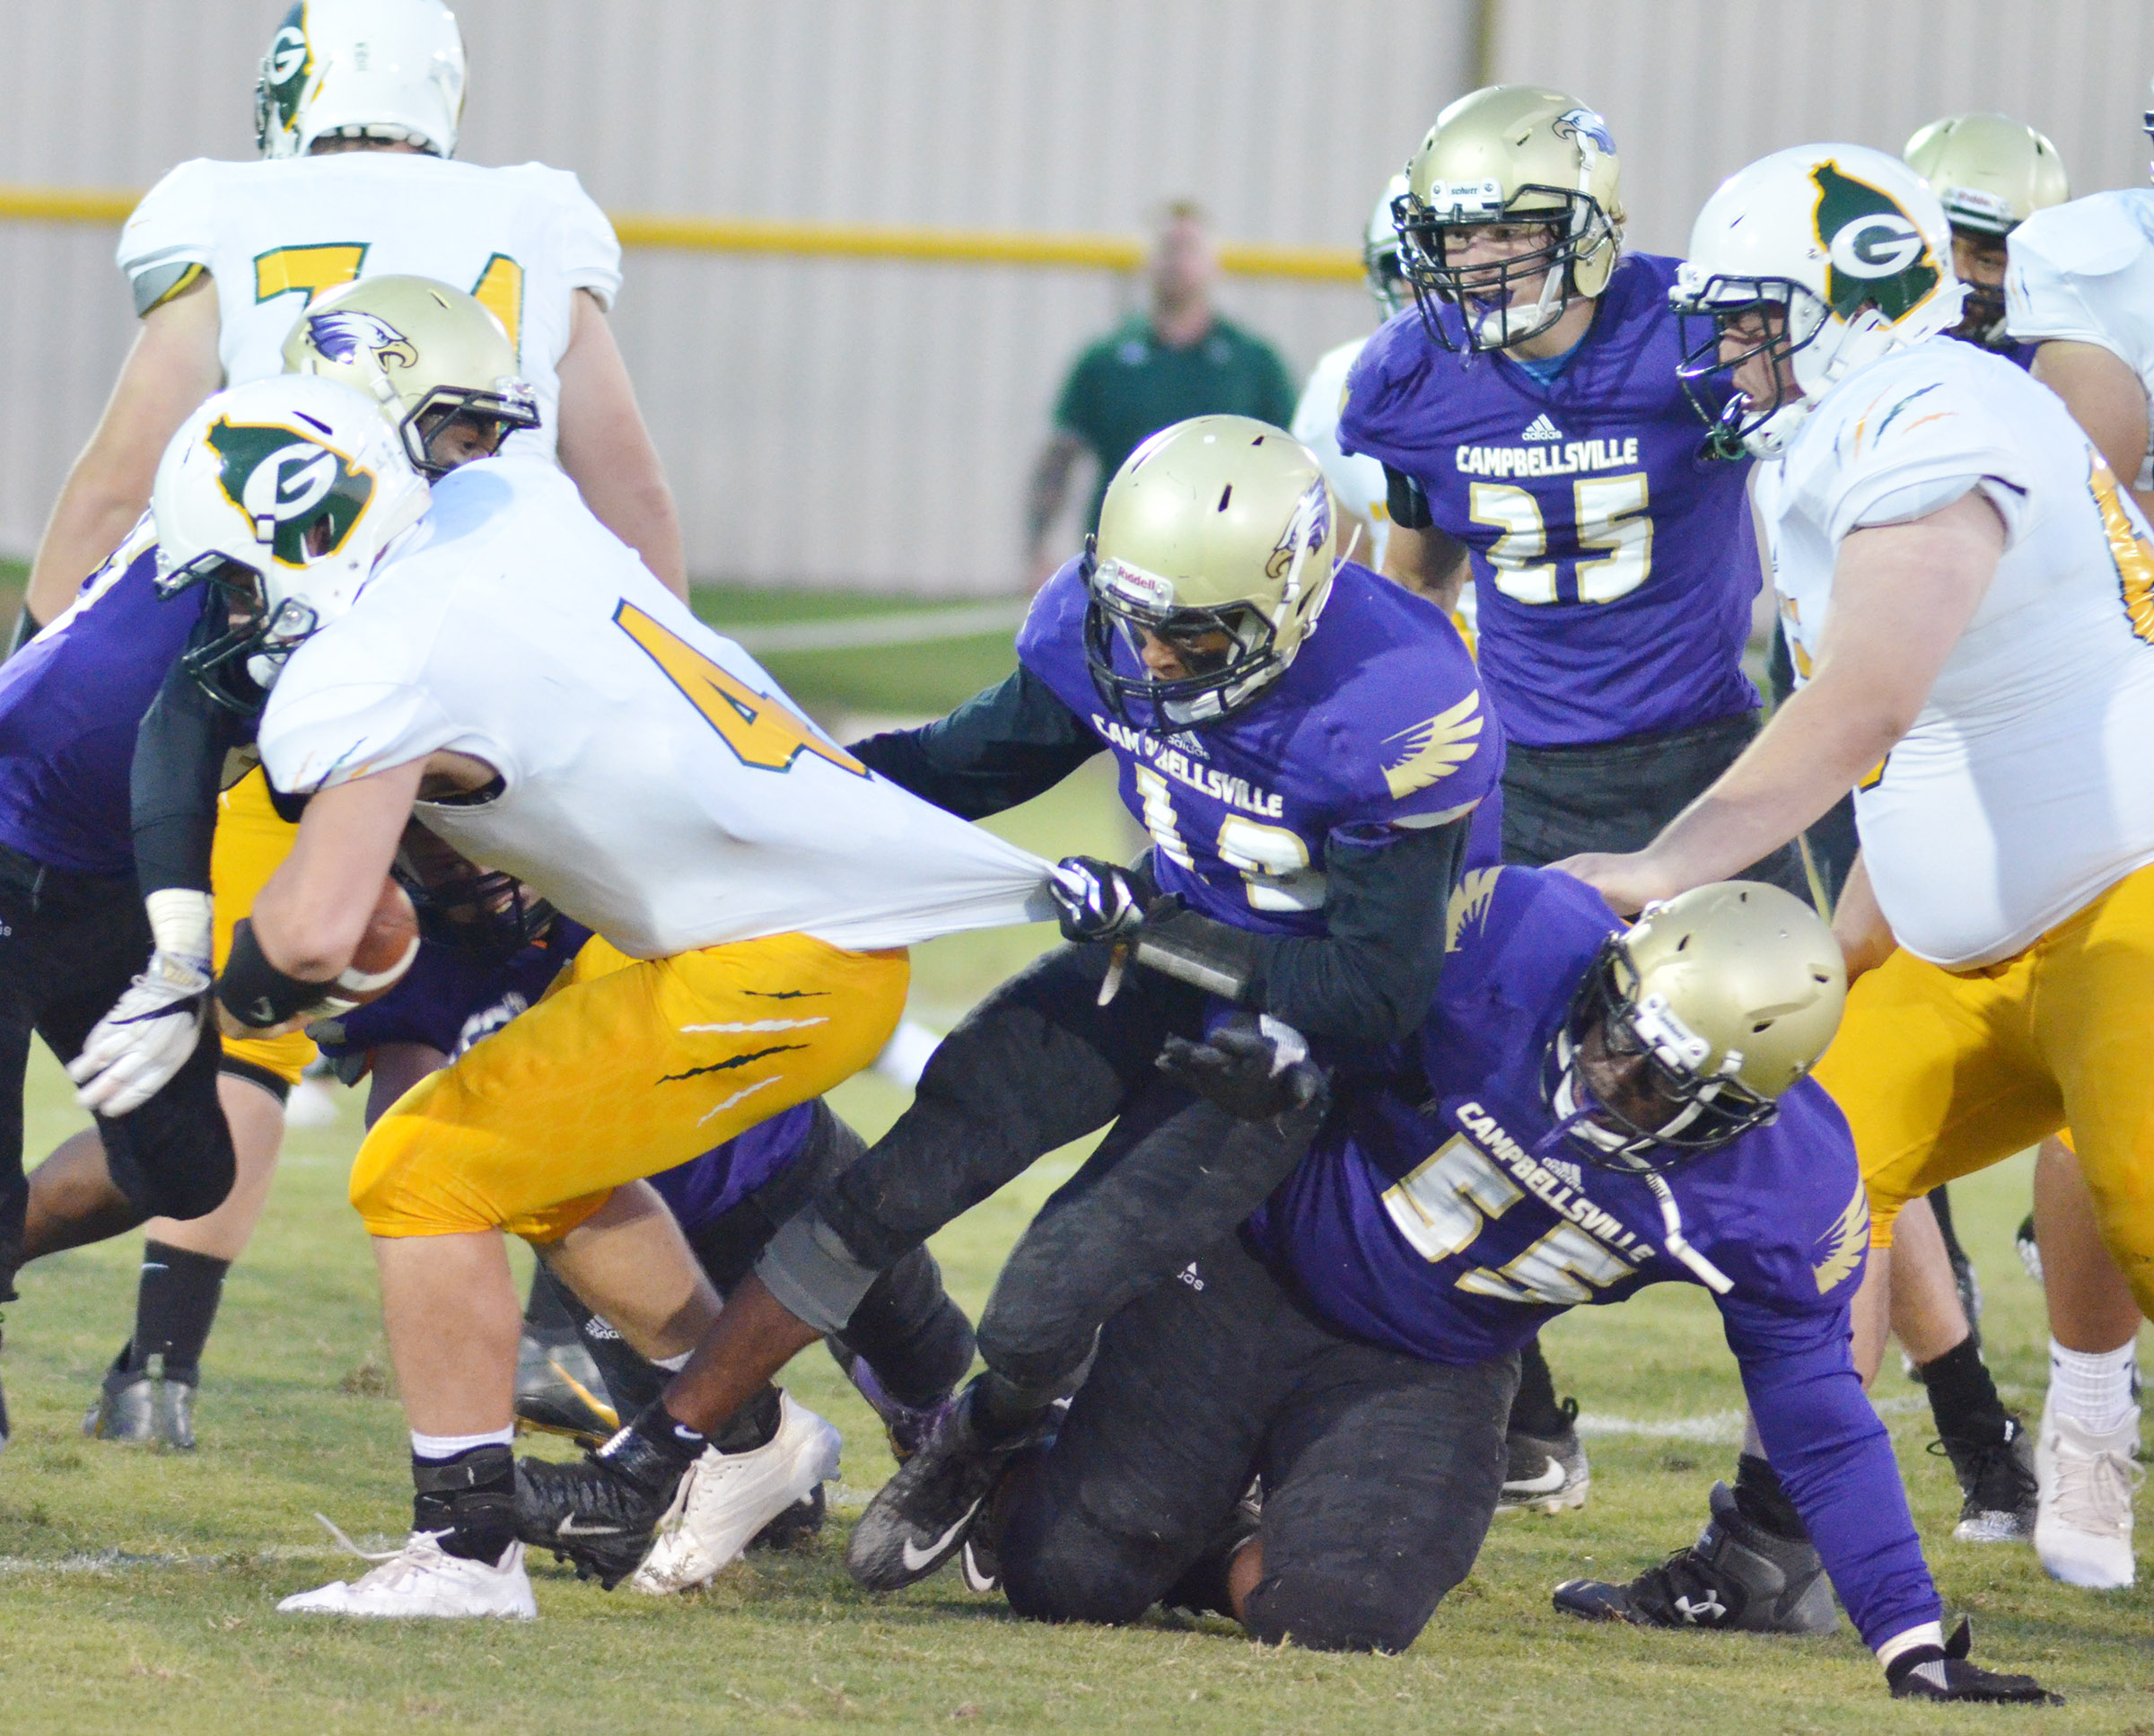 CHS senior Devonte Cubit pulls a Green County player to the ground.